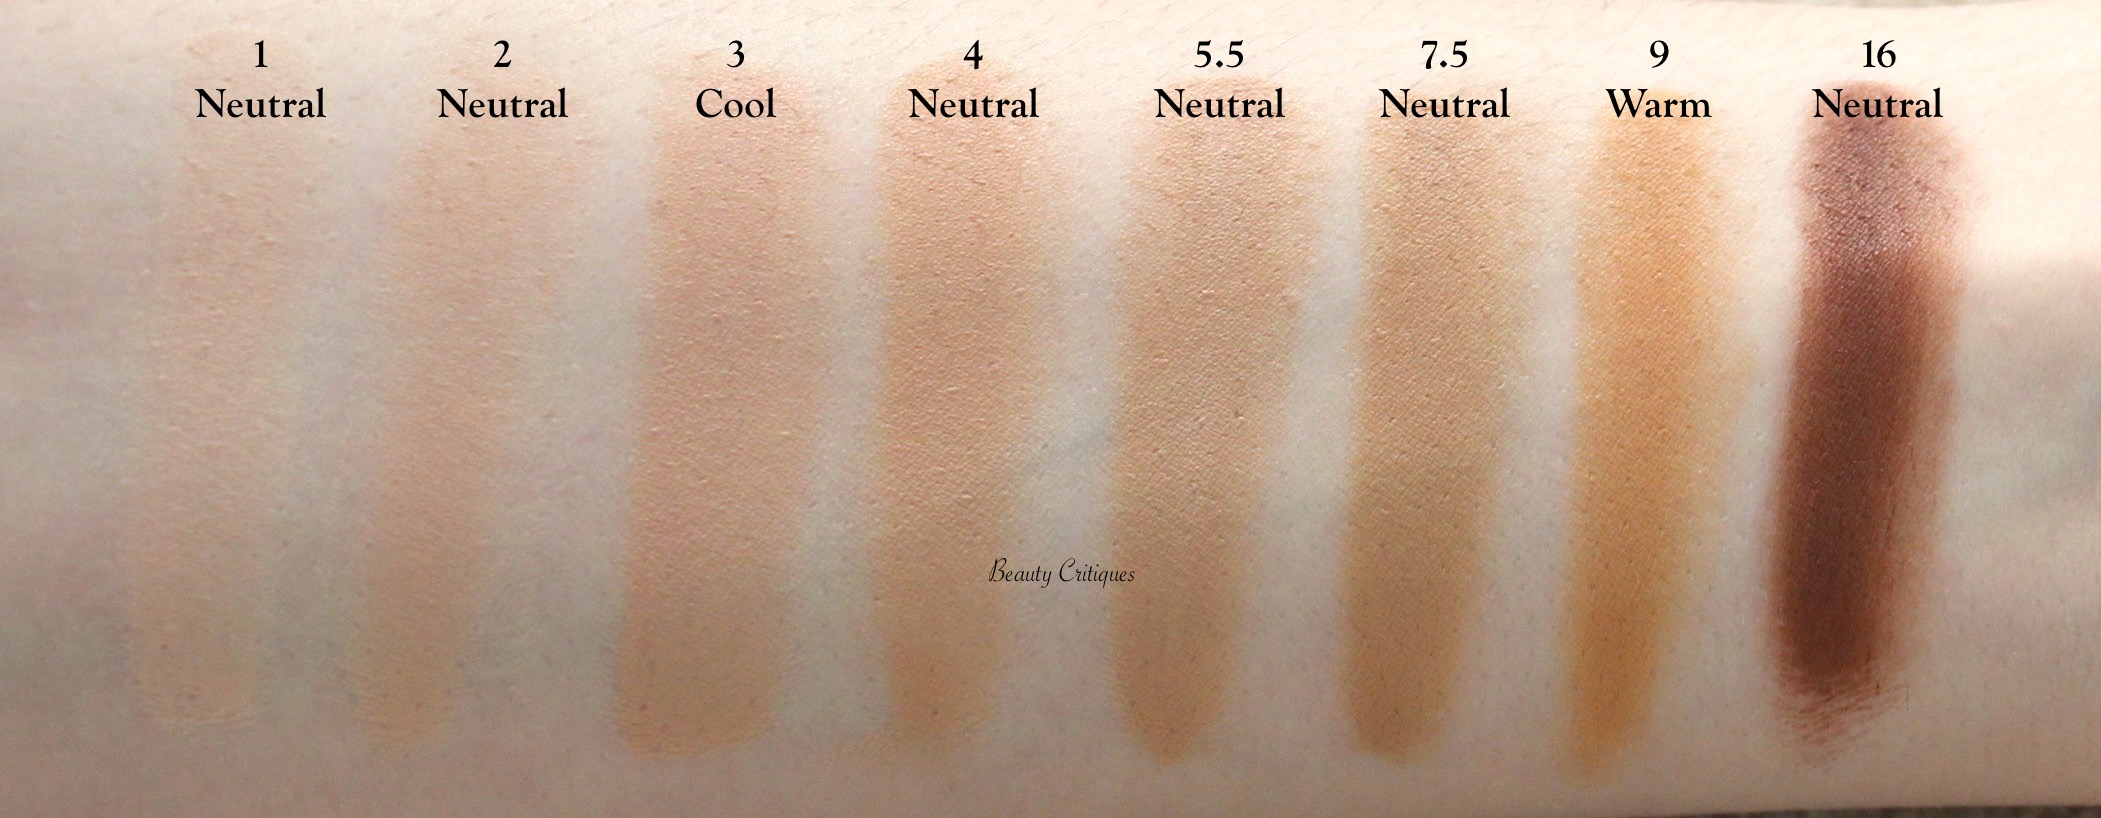 Charlotte Tilbury Airbrush Flawless Foundation Beauty Critiques